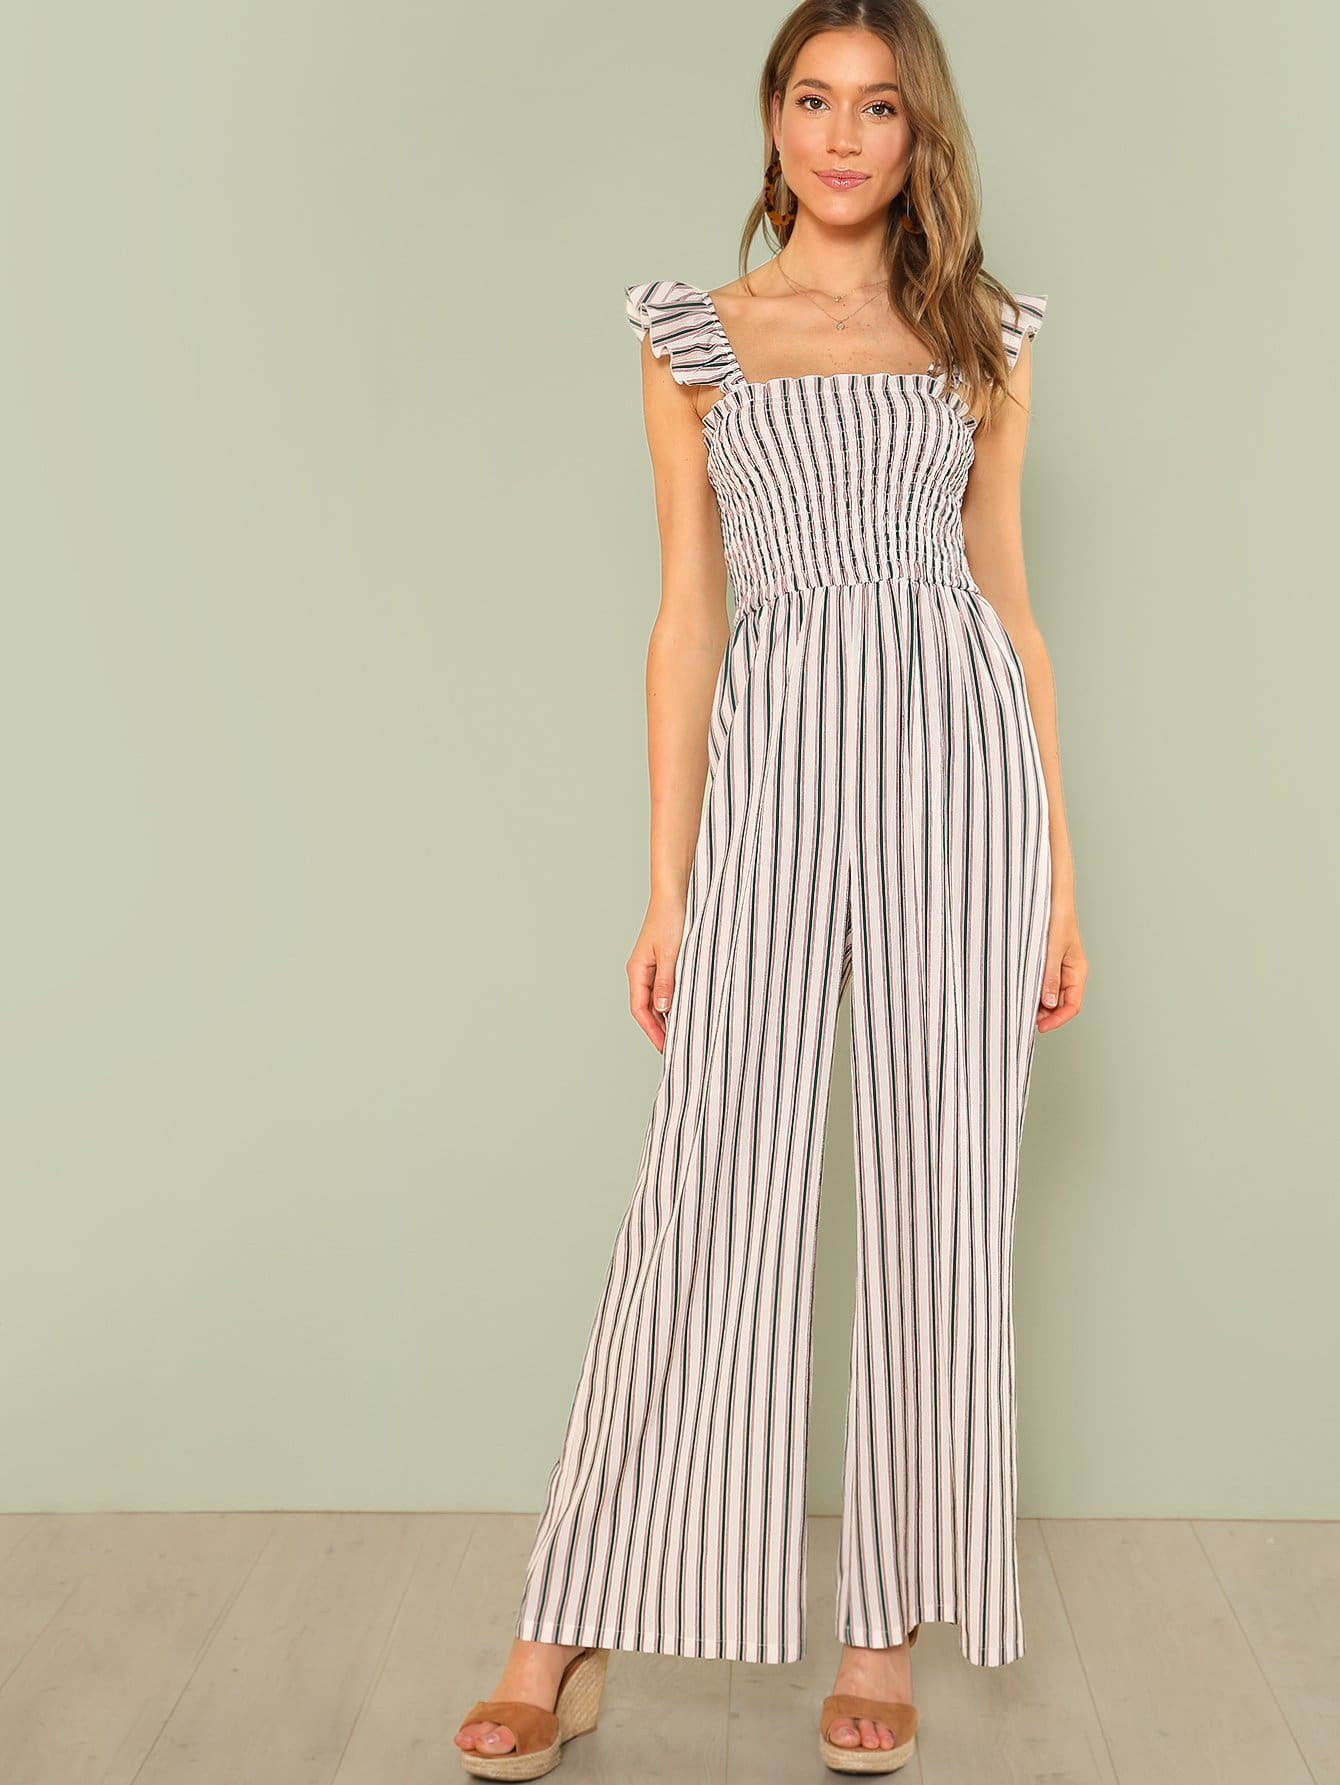 Shirred Panel Wide Leg Striped Jumpsuit shirred panel wide leg striped jumpsuit